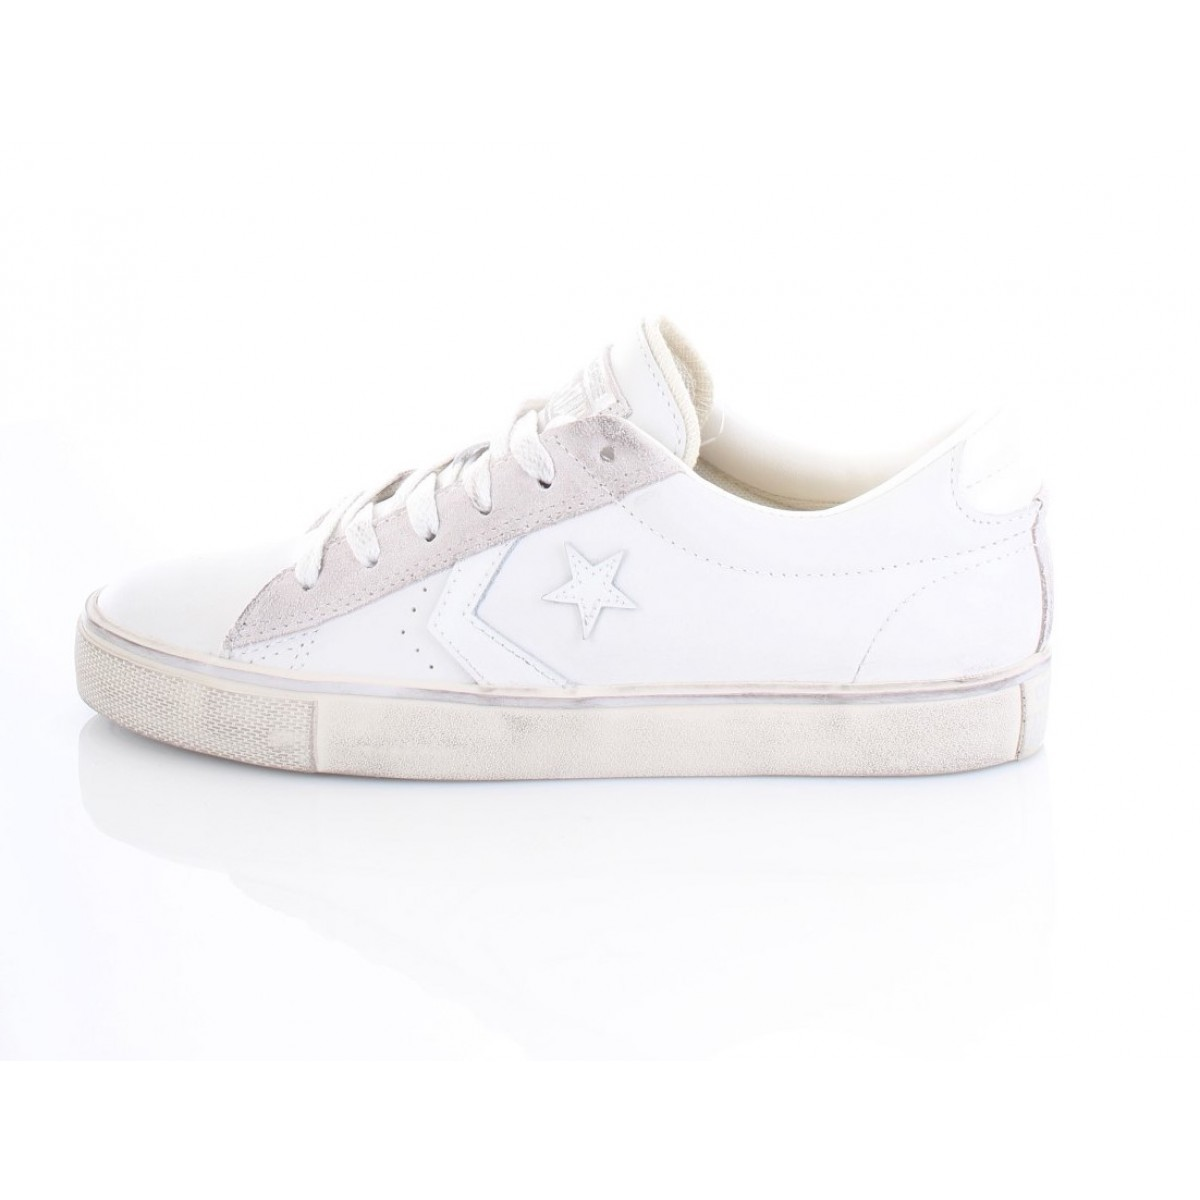 Converse All Star Pro Leather Vulc Ox Bianca logo Converse Bianco